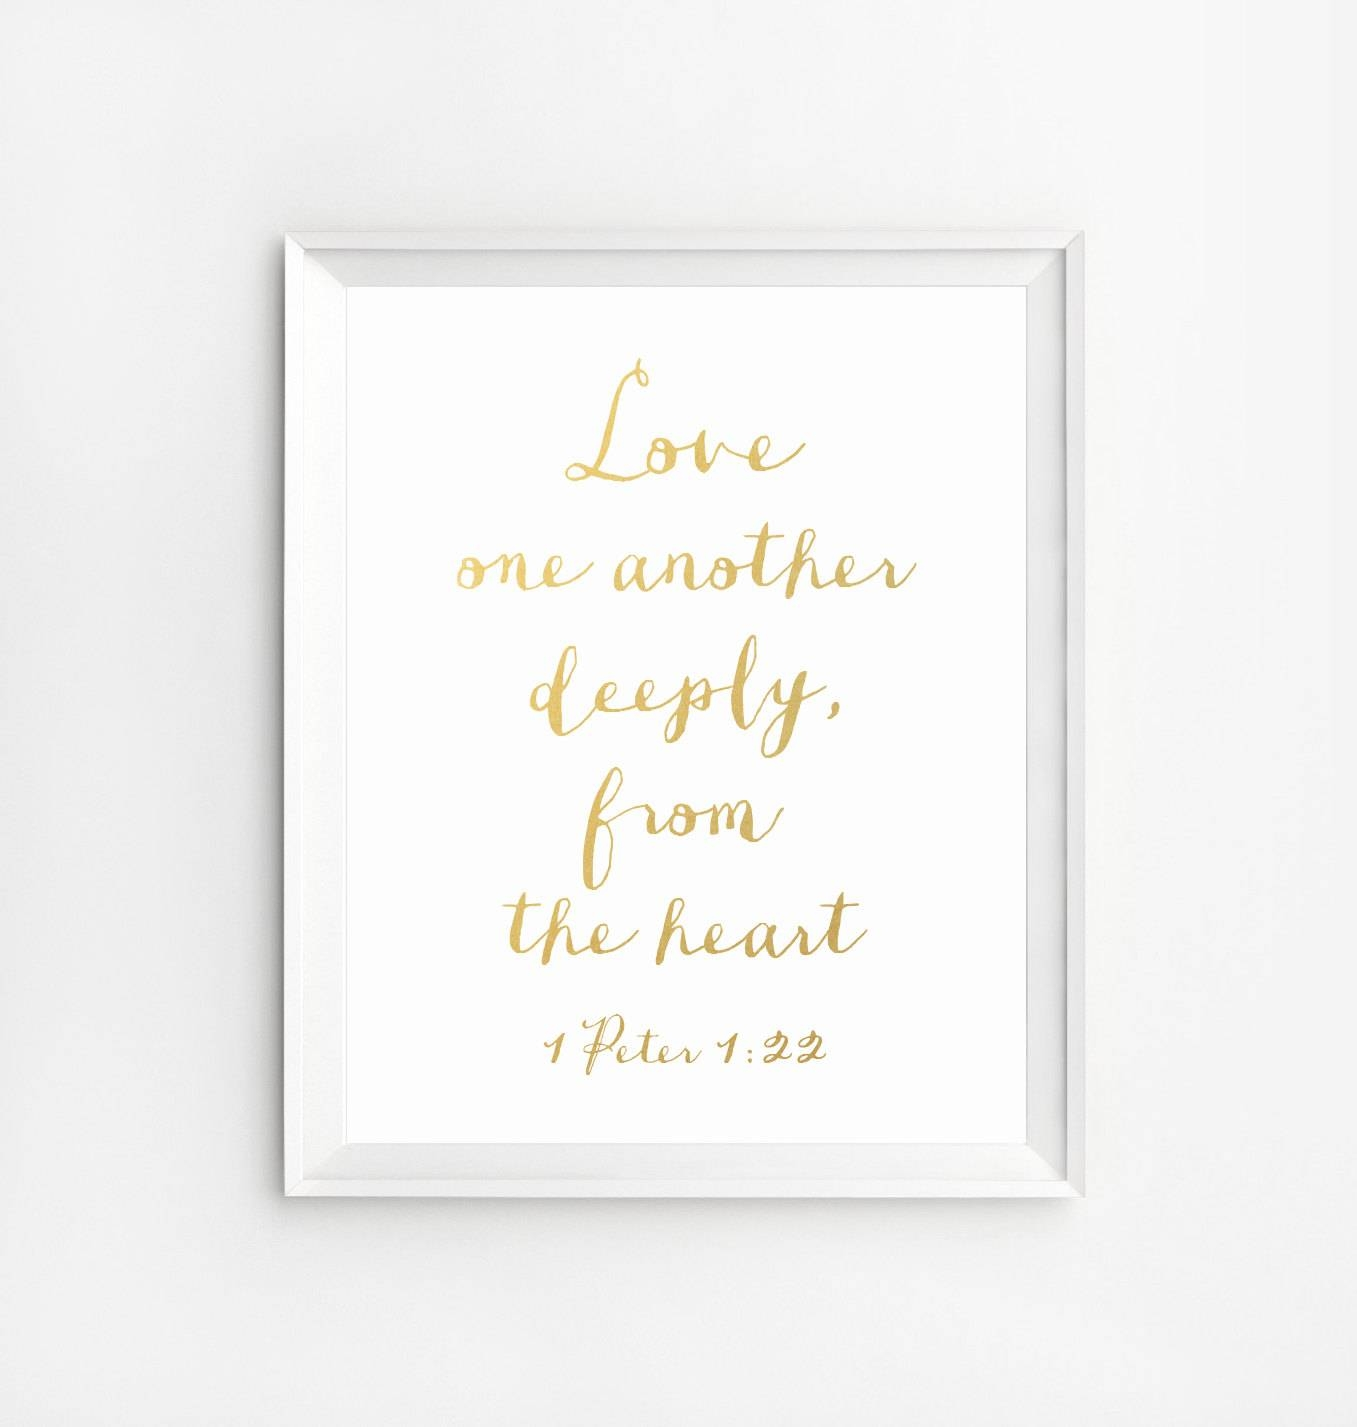 Bible Verse Wall Art Decor Scripture Print Gold Gold Foil Inside Latest Bible Verses Wall Art (Gallery 11 of 30)